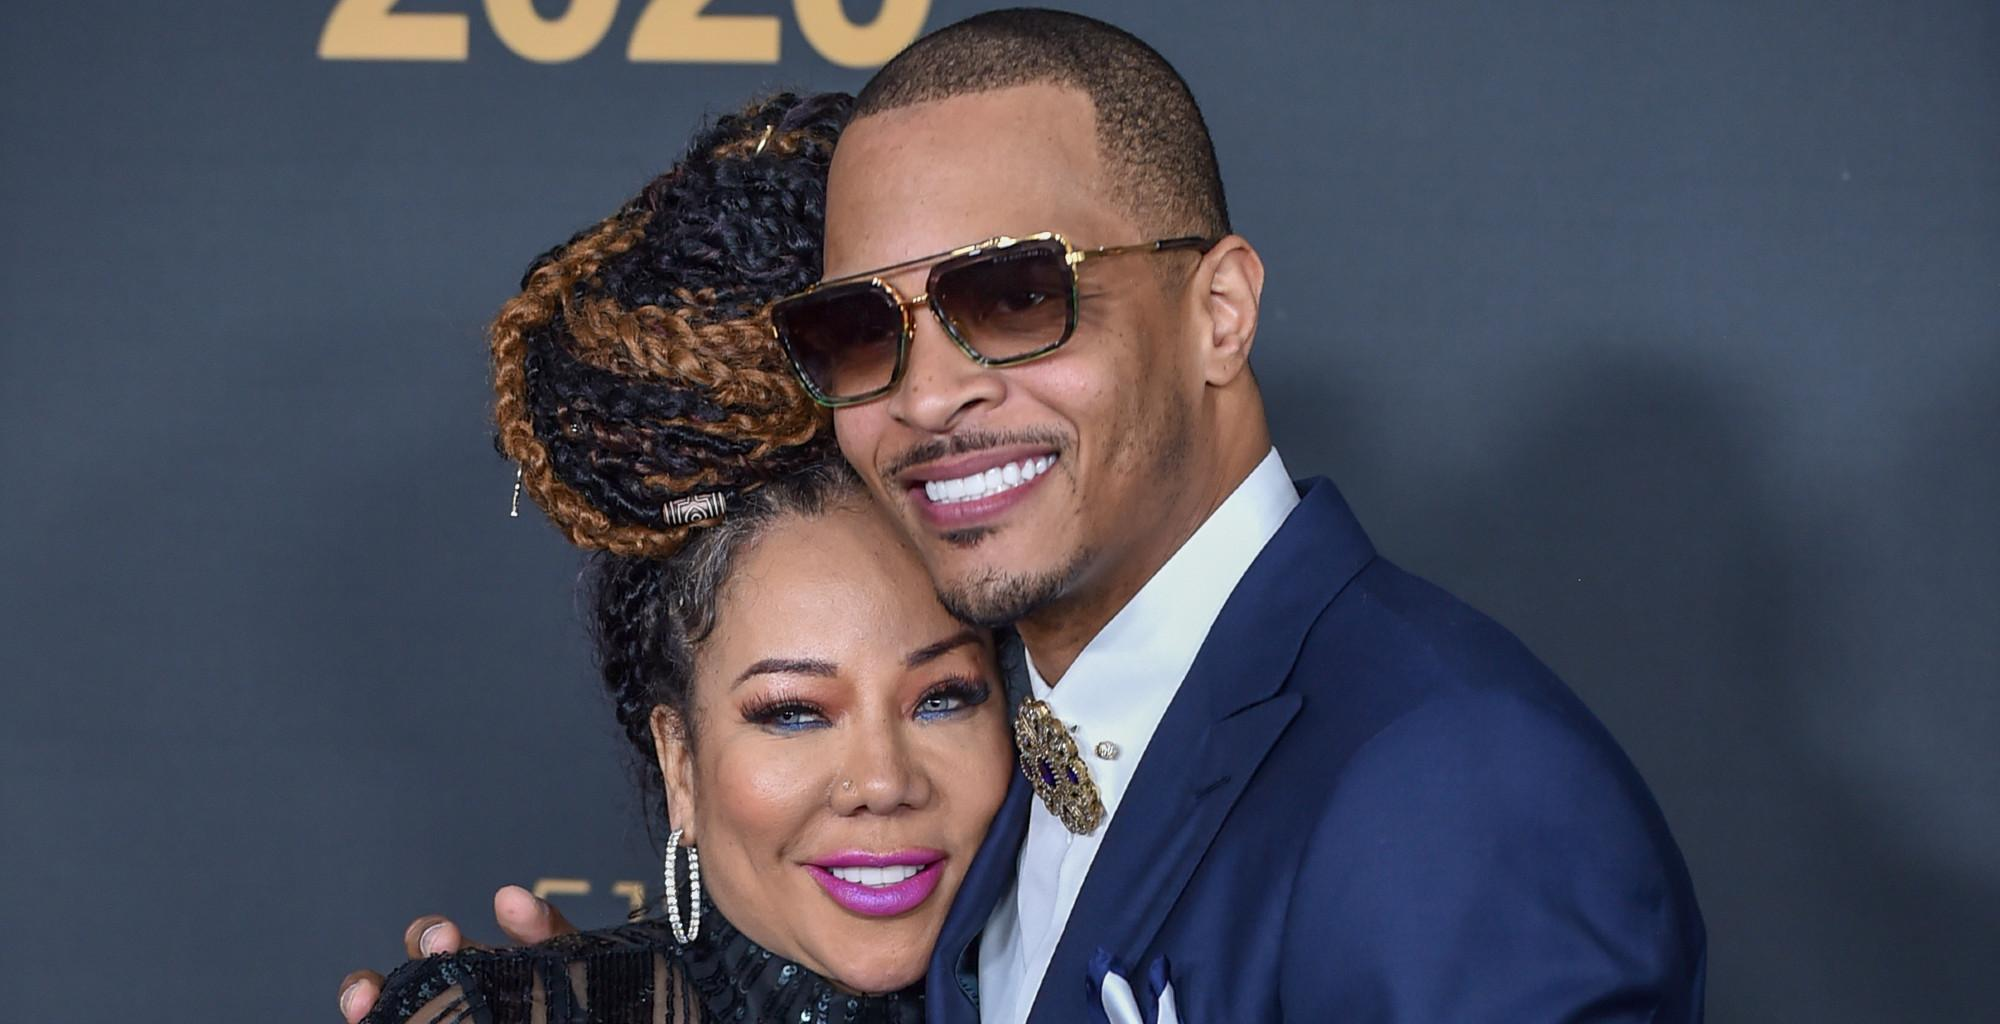 T.I. Shares A Photo That Makes Him Feel Good Following So Many 'RIP' Posts